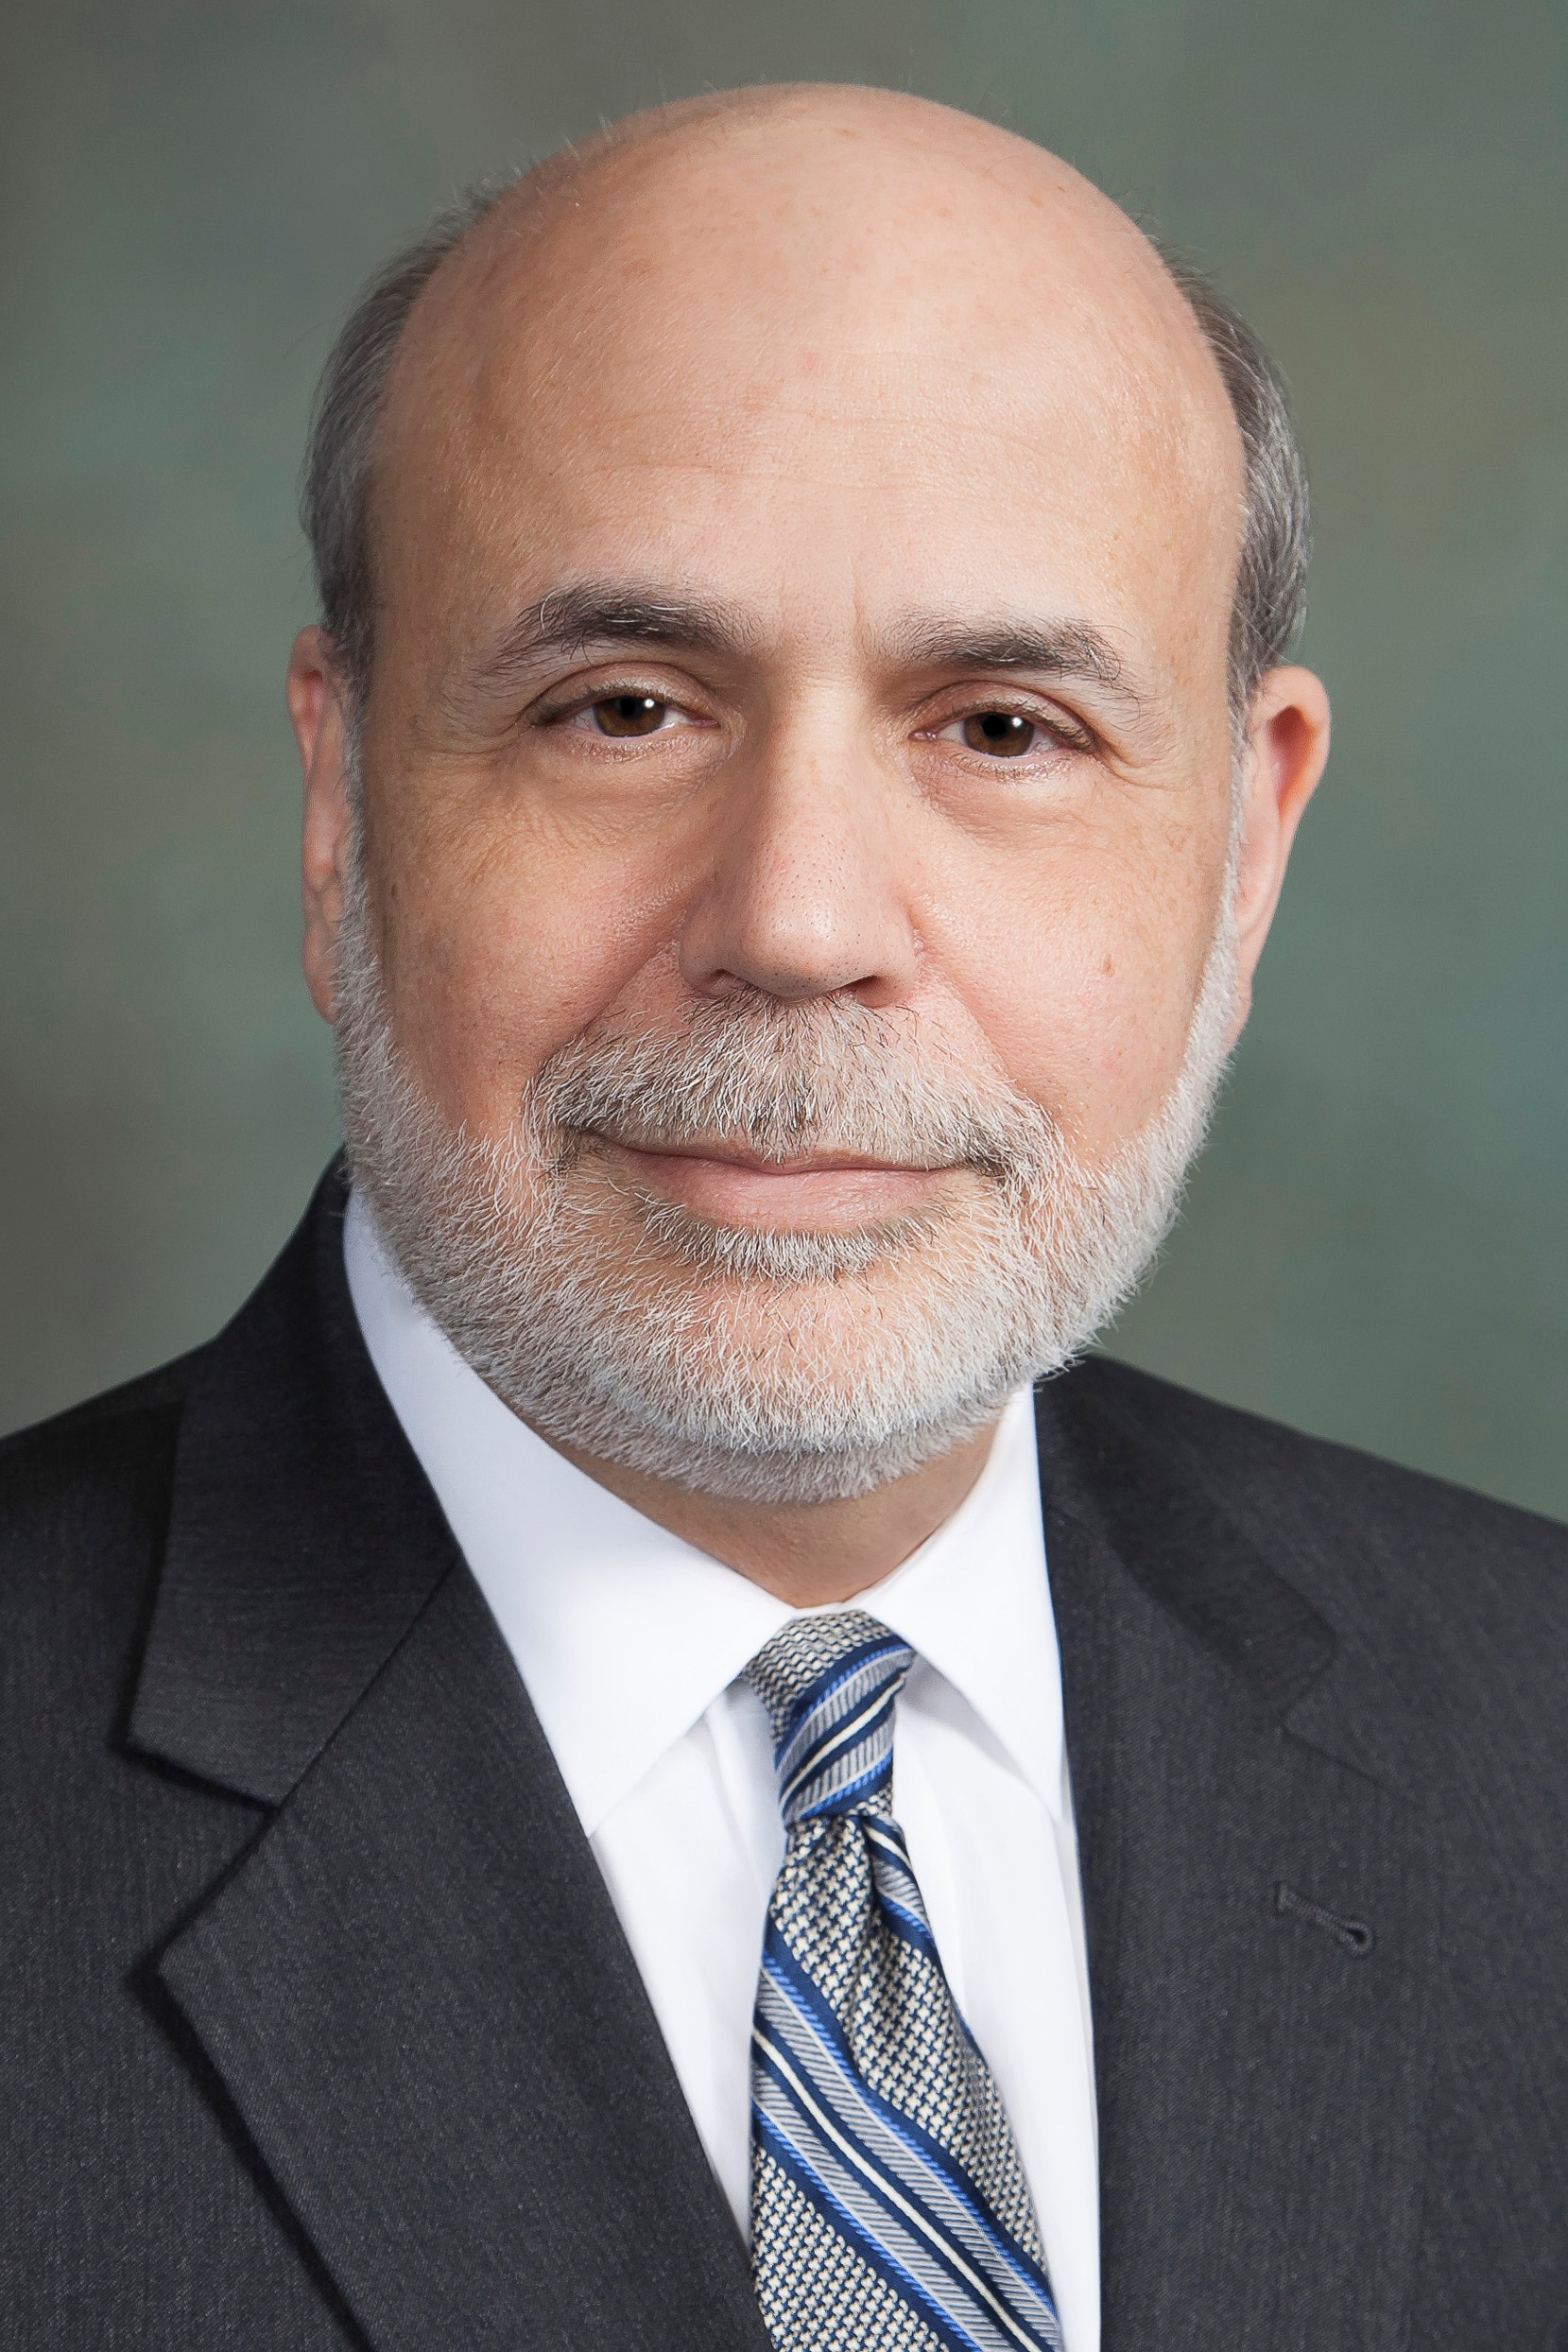 bernanke ben s. (2004). essays on the great depression. princeton university press Ben bernanke's essays on the great depression is a collection of 9 essays written in the 80's and 90's about the financial and labor markets during the 1930's.